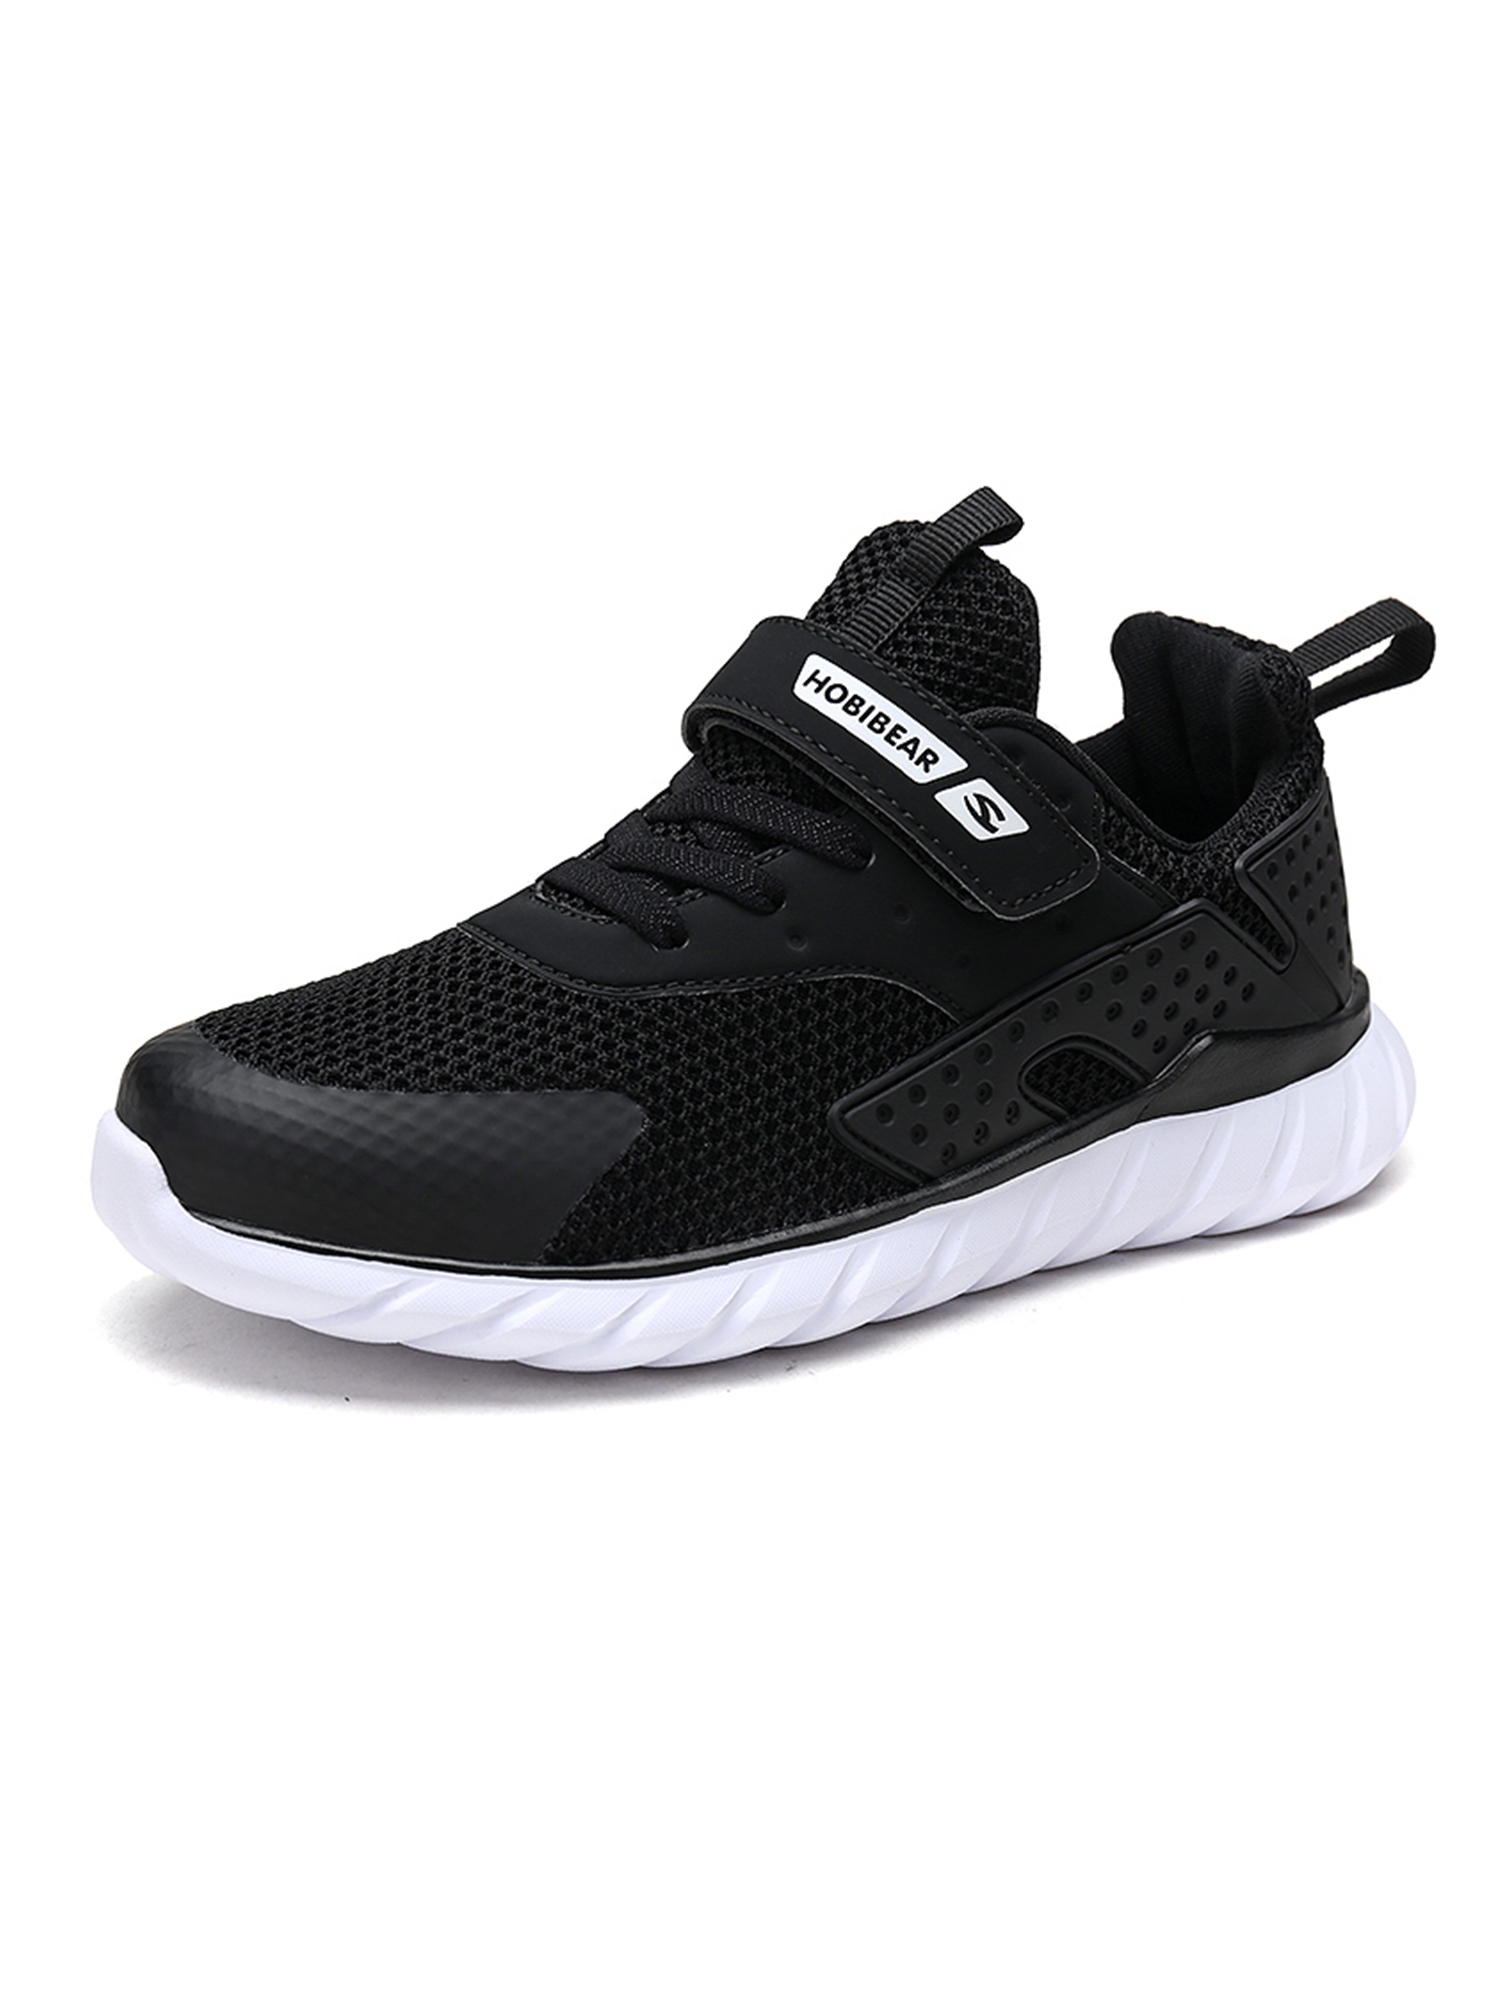 OwnShoe Kids' Sneakers Hook and Loop Low Top Tennis Shoes for Boys and Girls